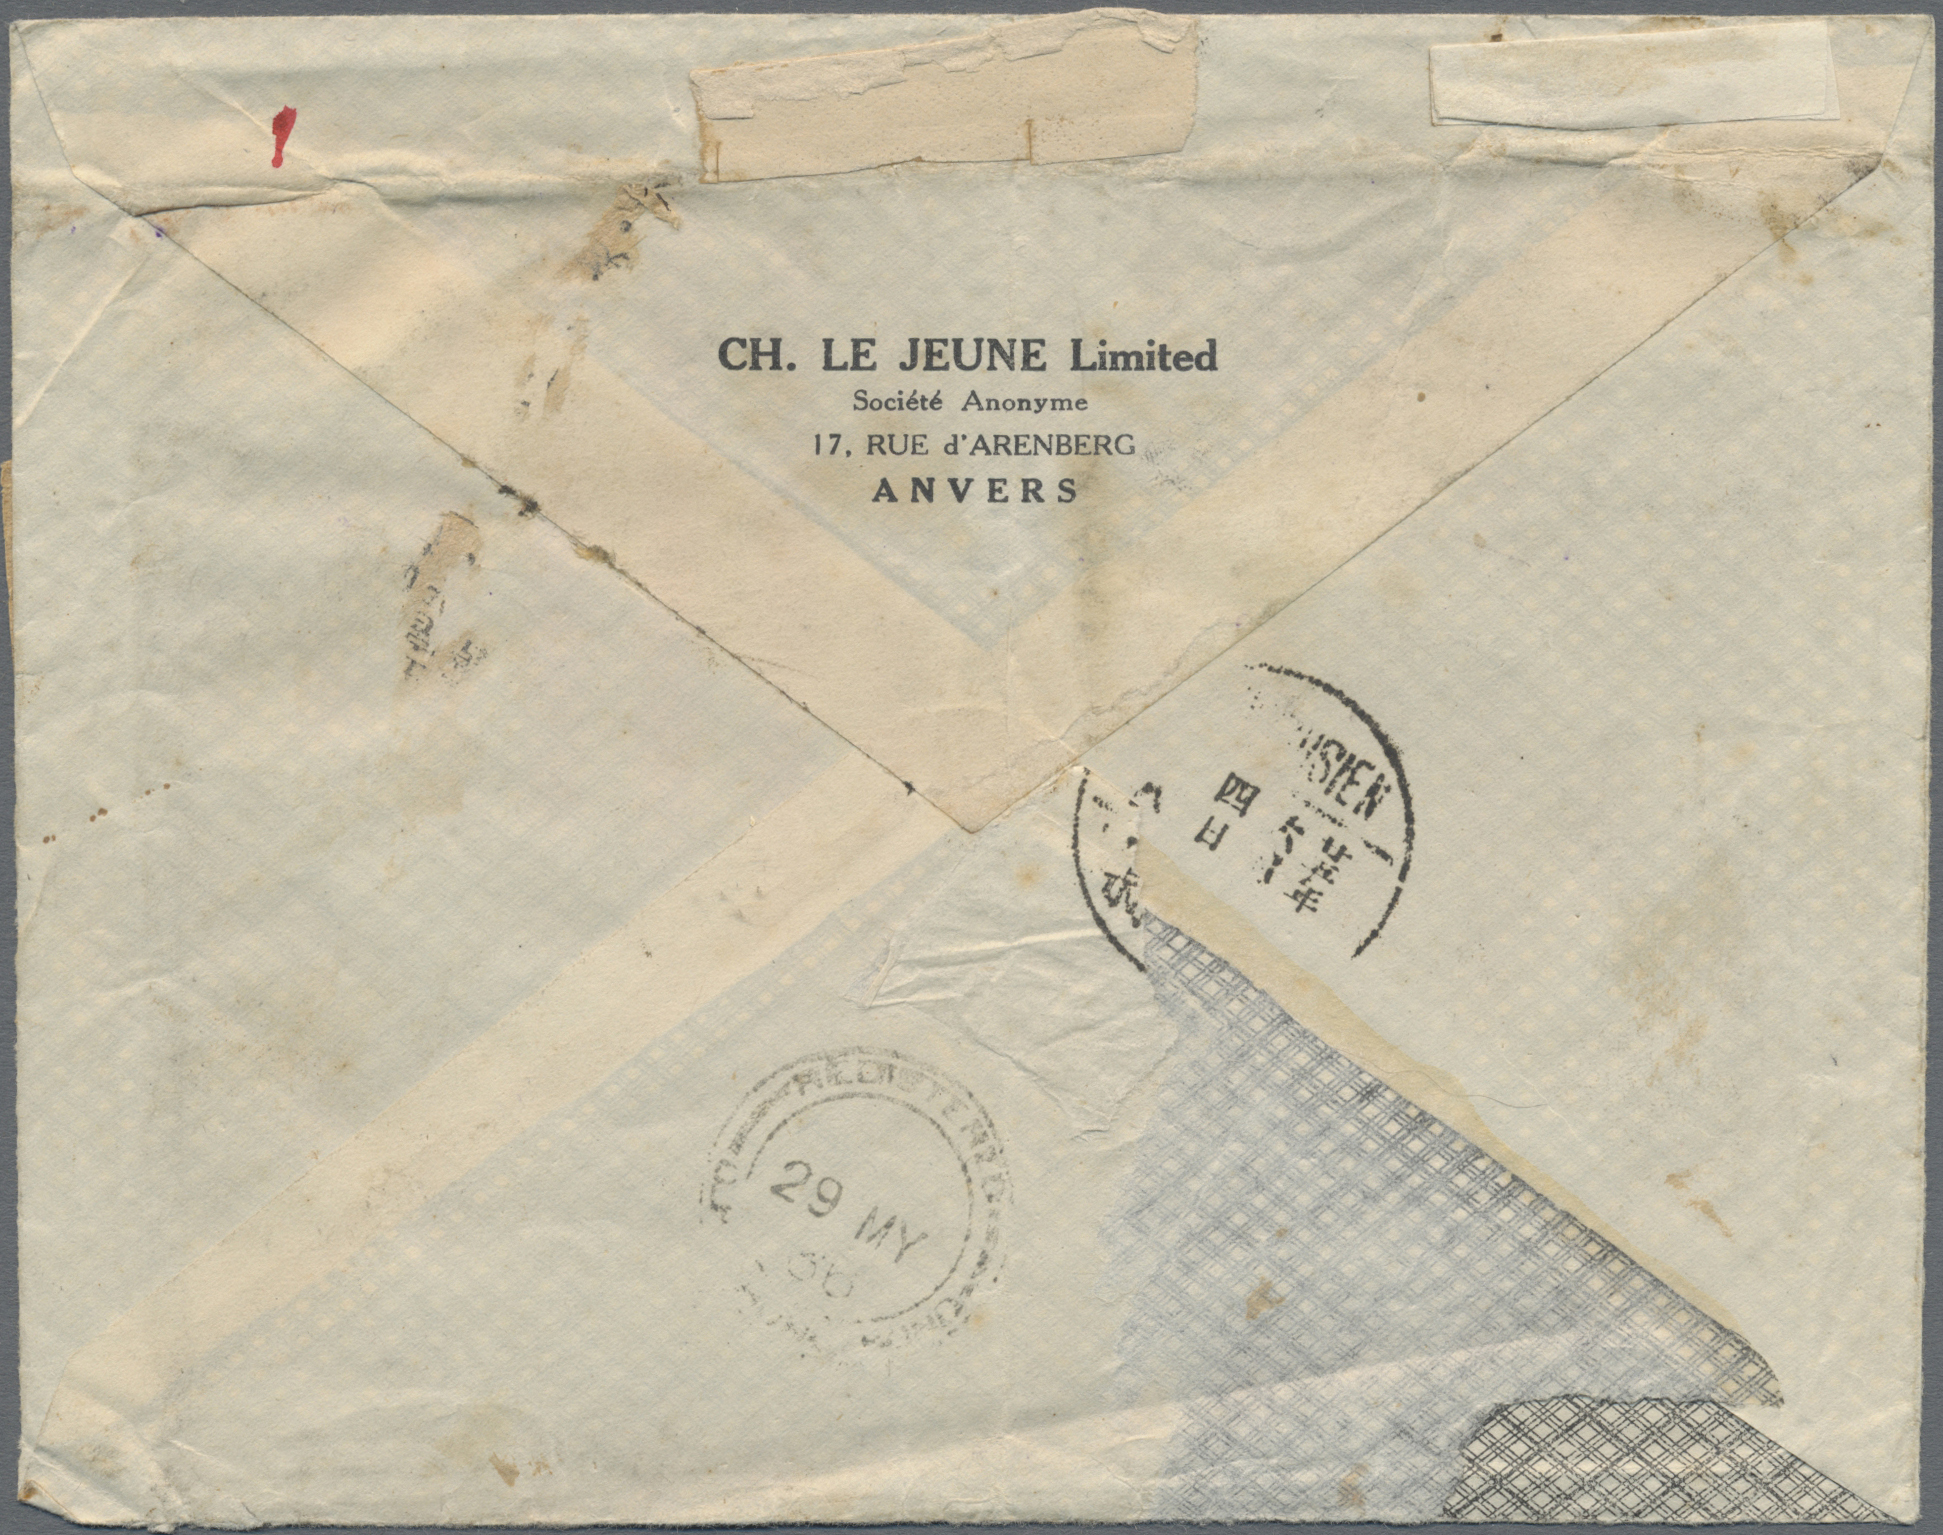 Lot 10294 - China - Incoming Mail  -  Auktionshaus Christoph Gärtner GmbH & Co. KG Sale #47 Single lots: Asia, Thematics, Overseas, Europe